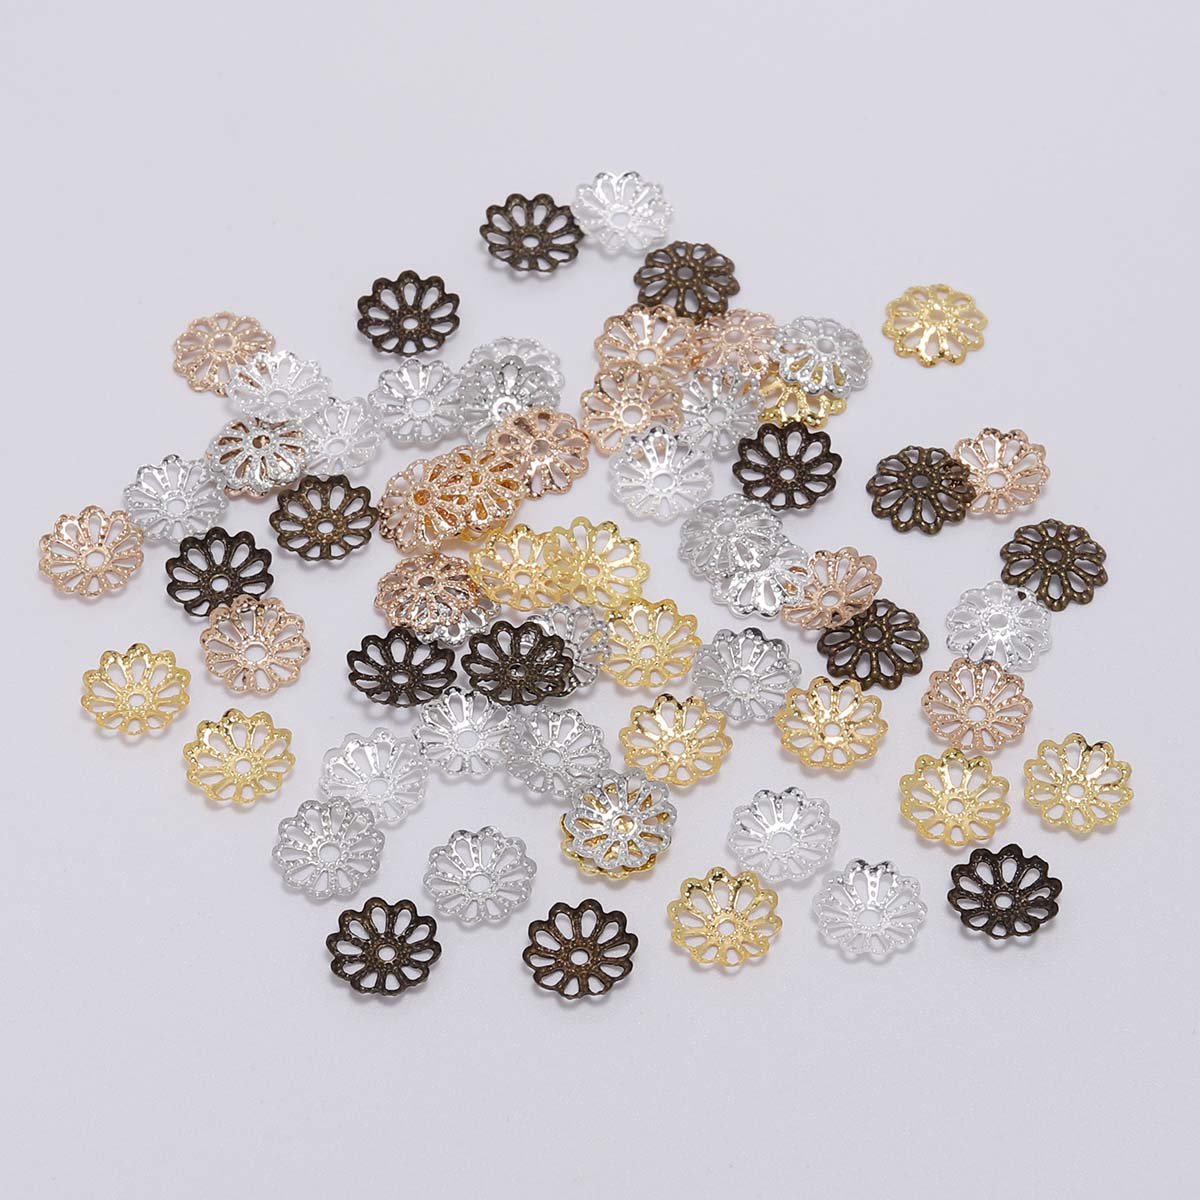 200PCS Antique Silver Tibetan Donut Ring Spacer Beads 4mm Craft Finding